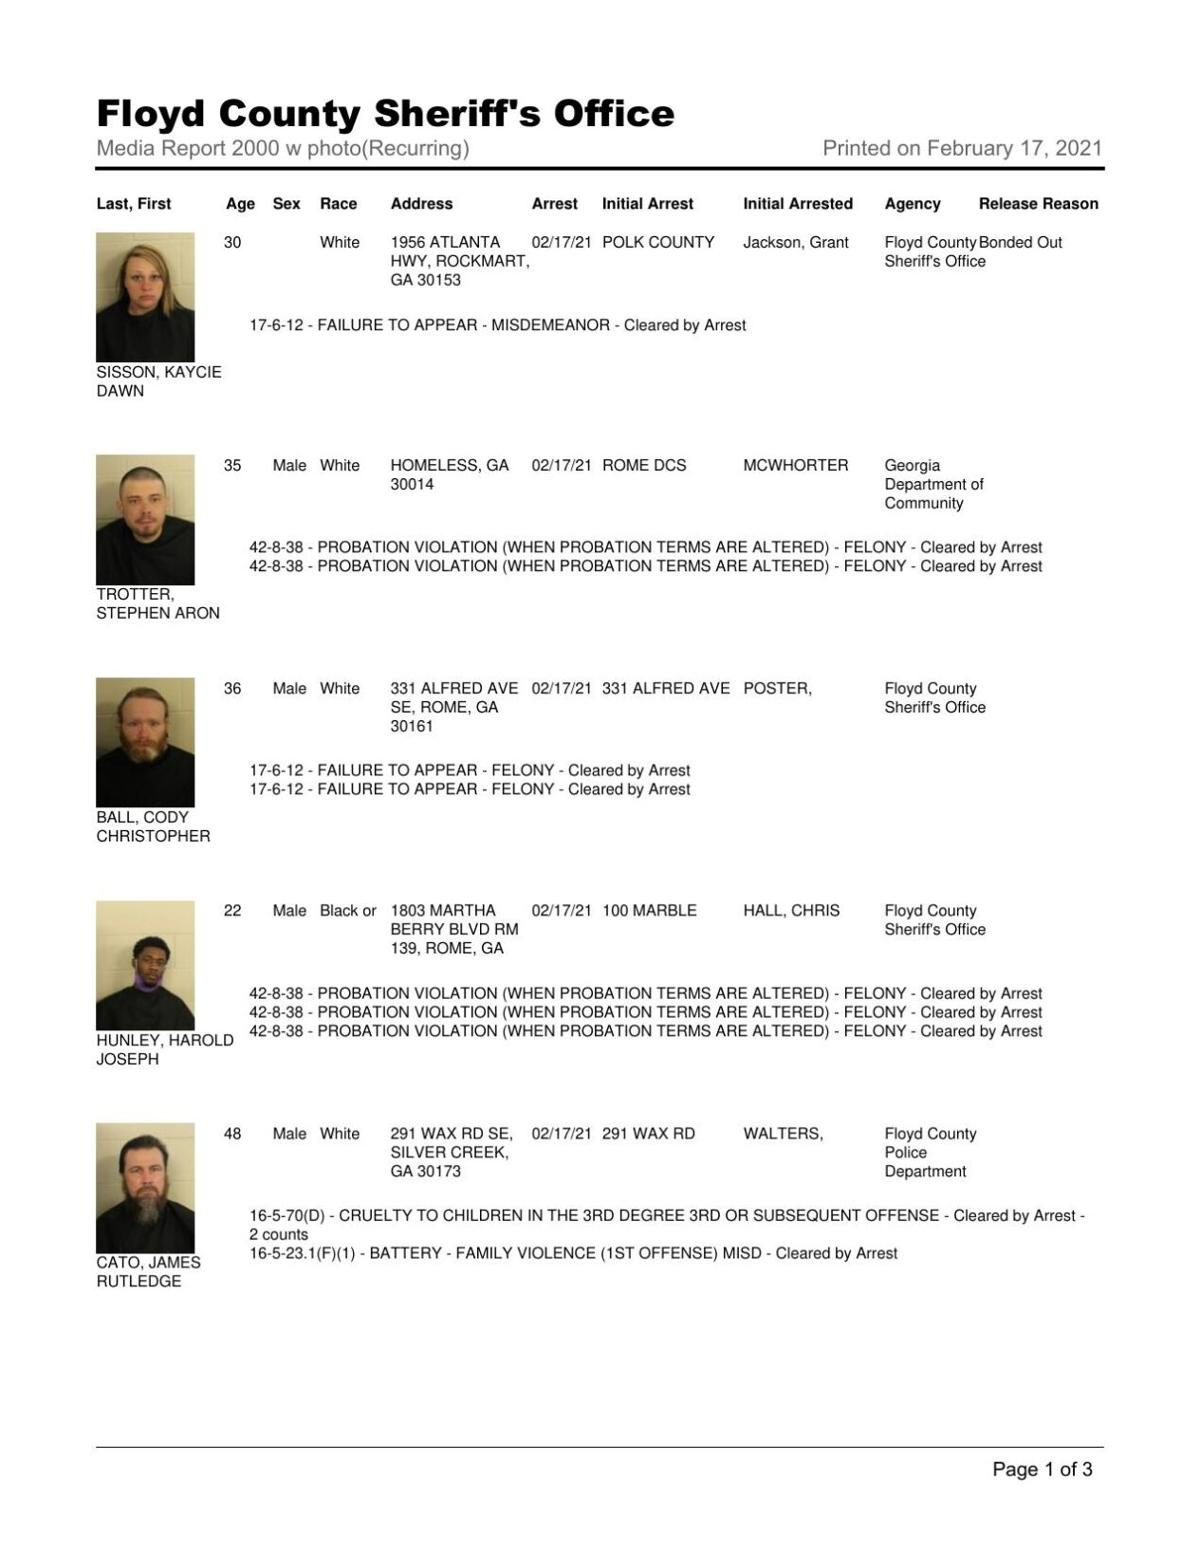 Floyd County Jail report for 8 p.m. Wednesday, Feb. 17